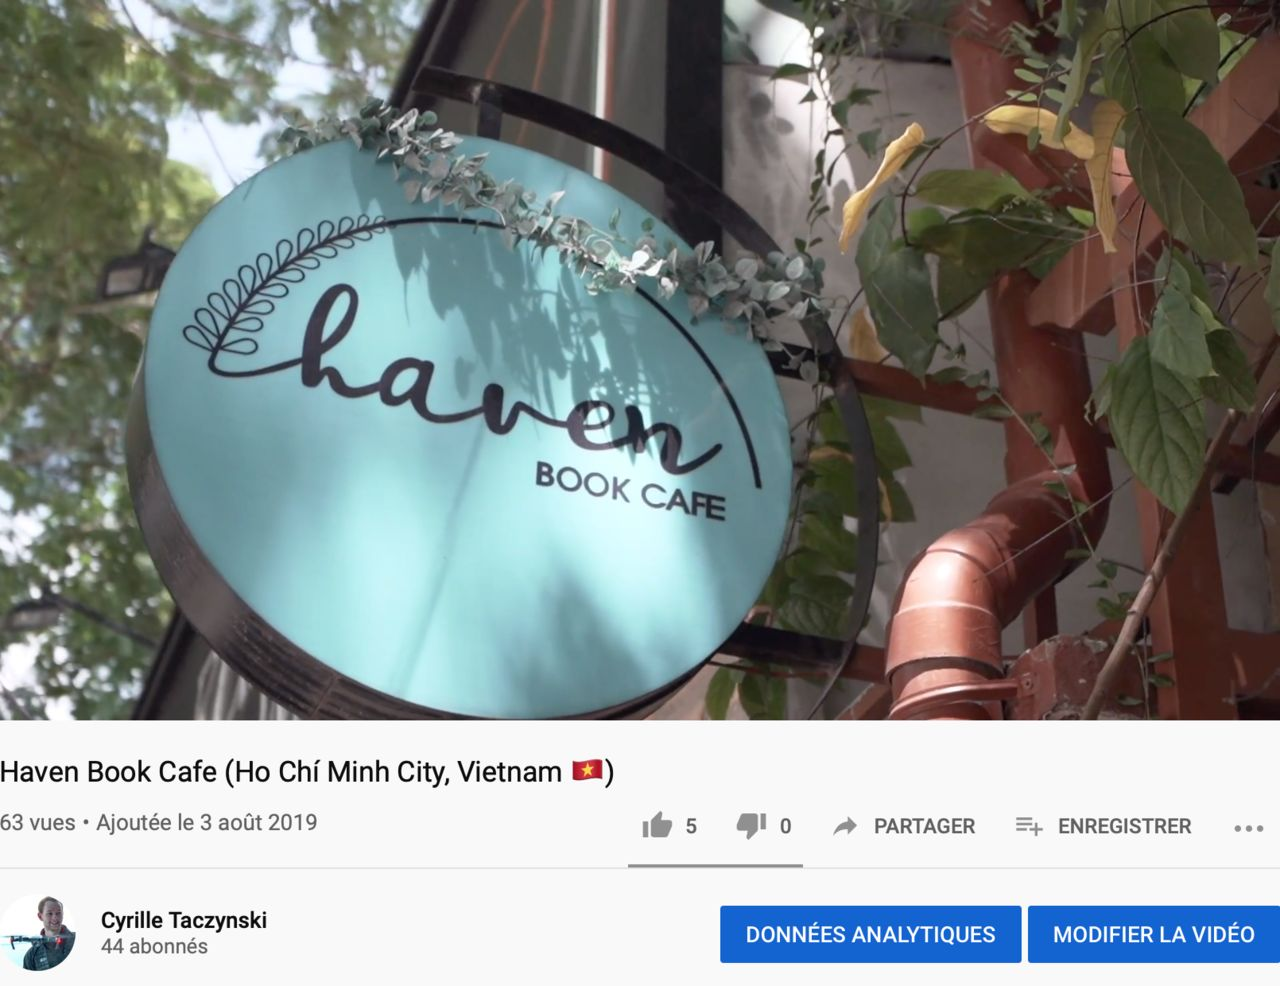 Haven Book Cafe (Ho Chí Minh City, Vietnam 🇻🇳)